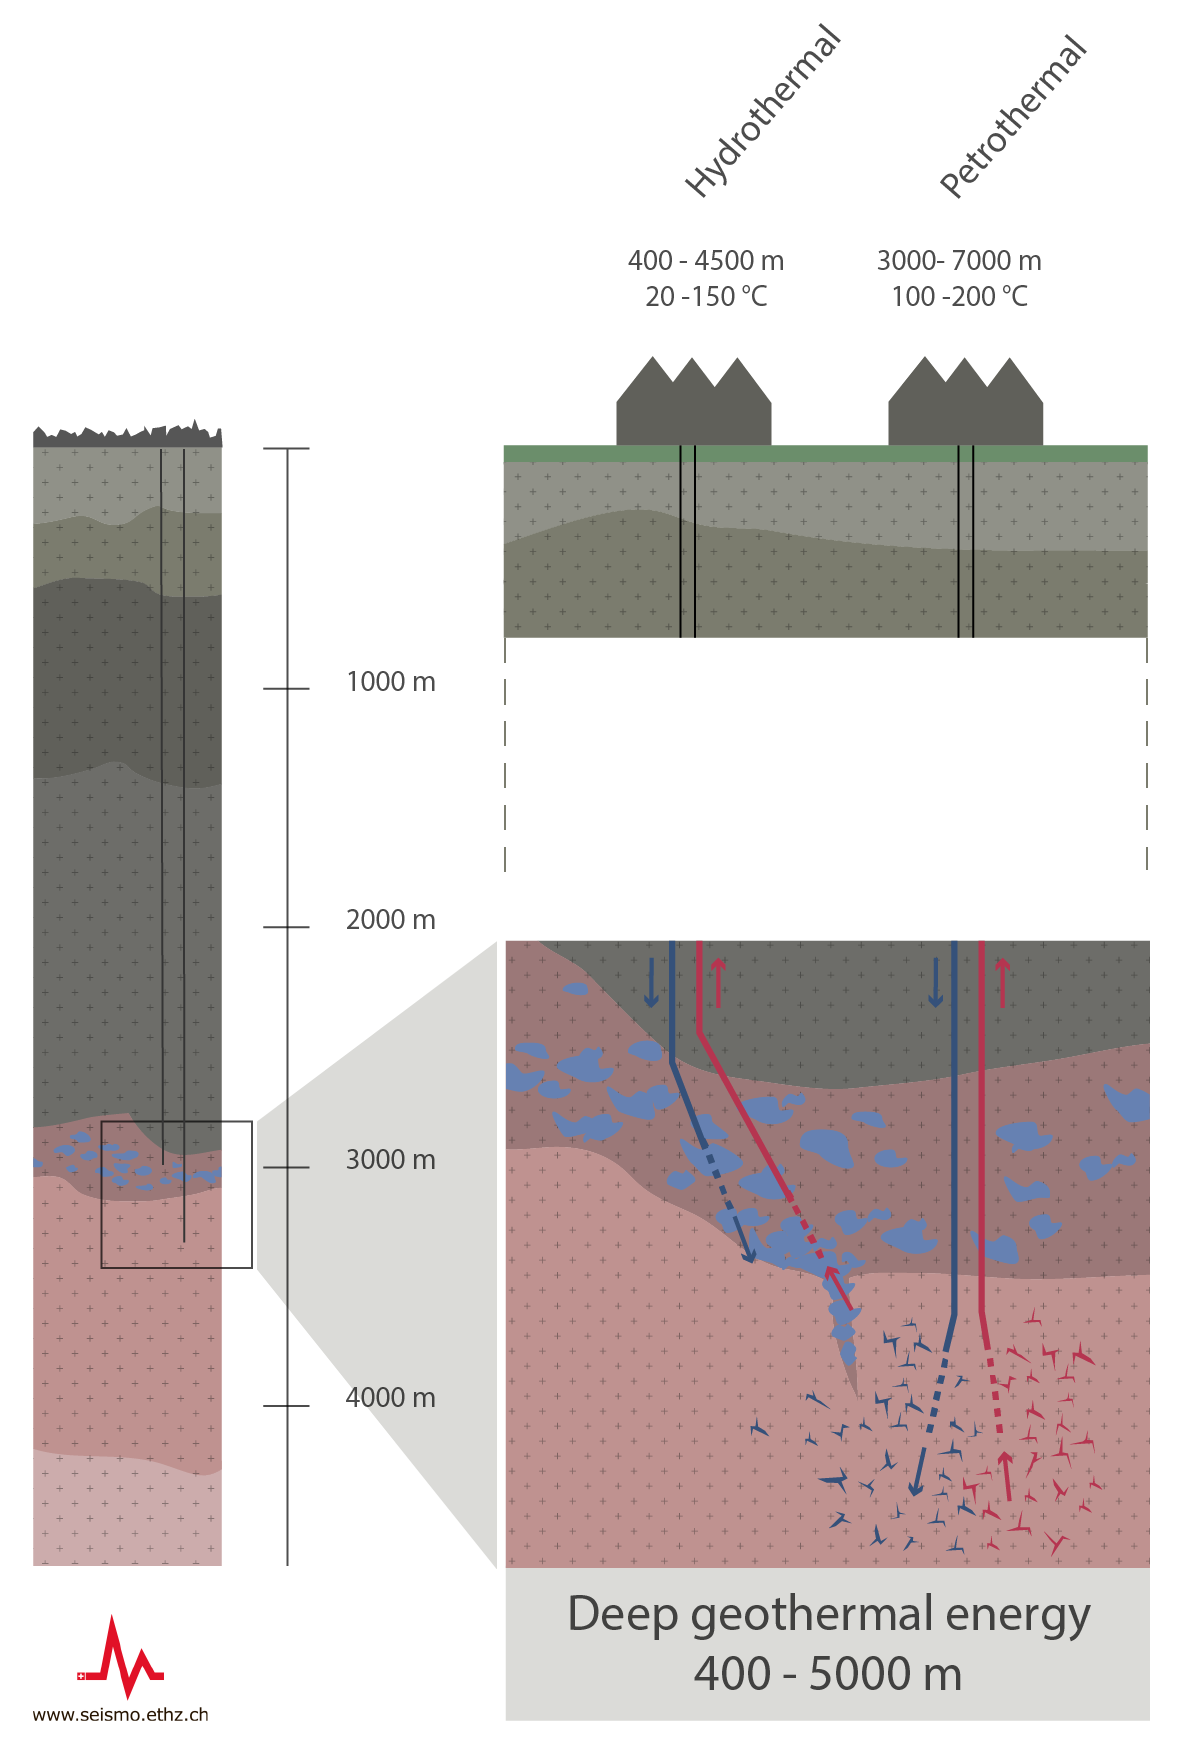 Deep geothermal energy